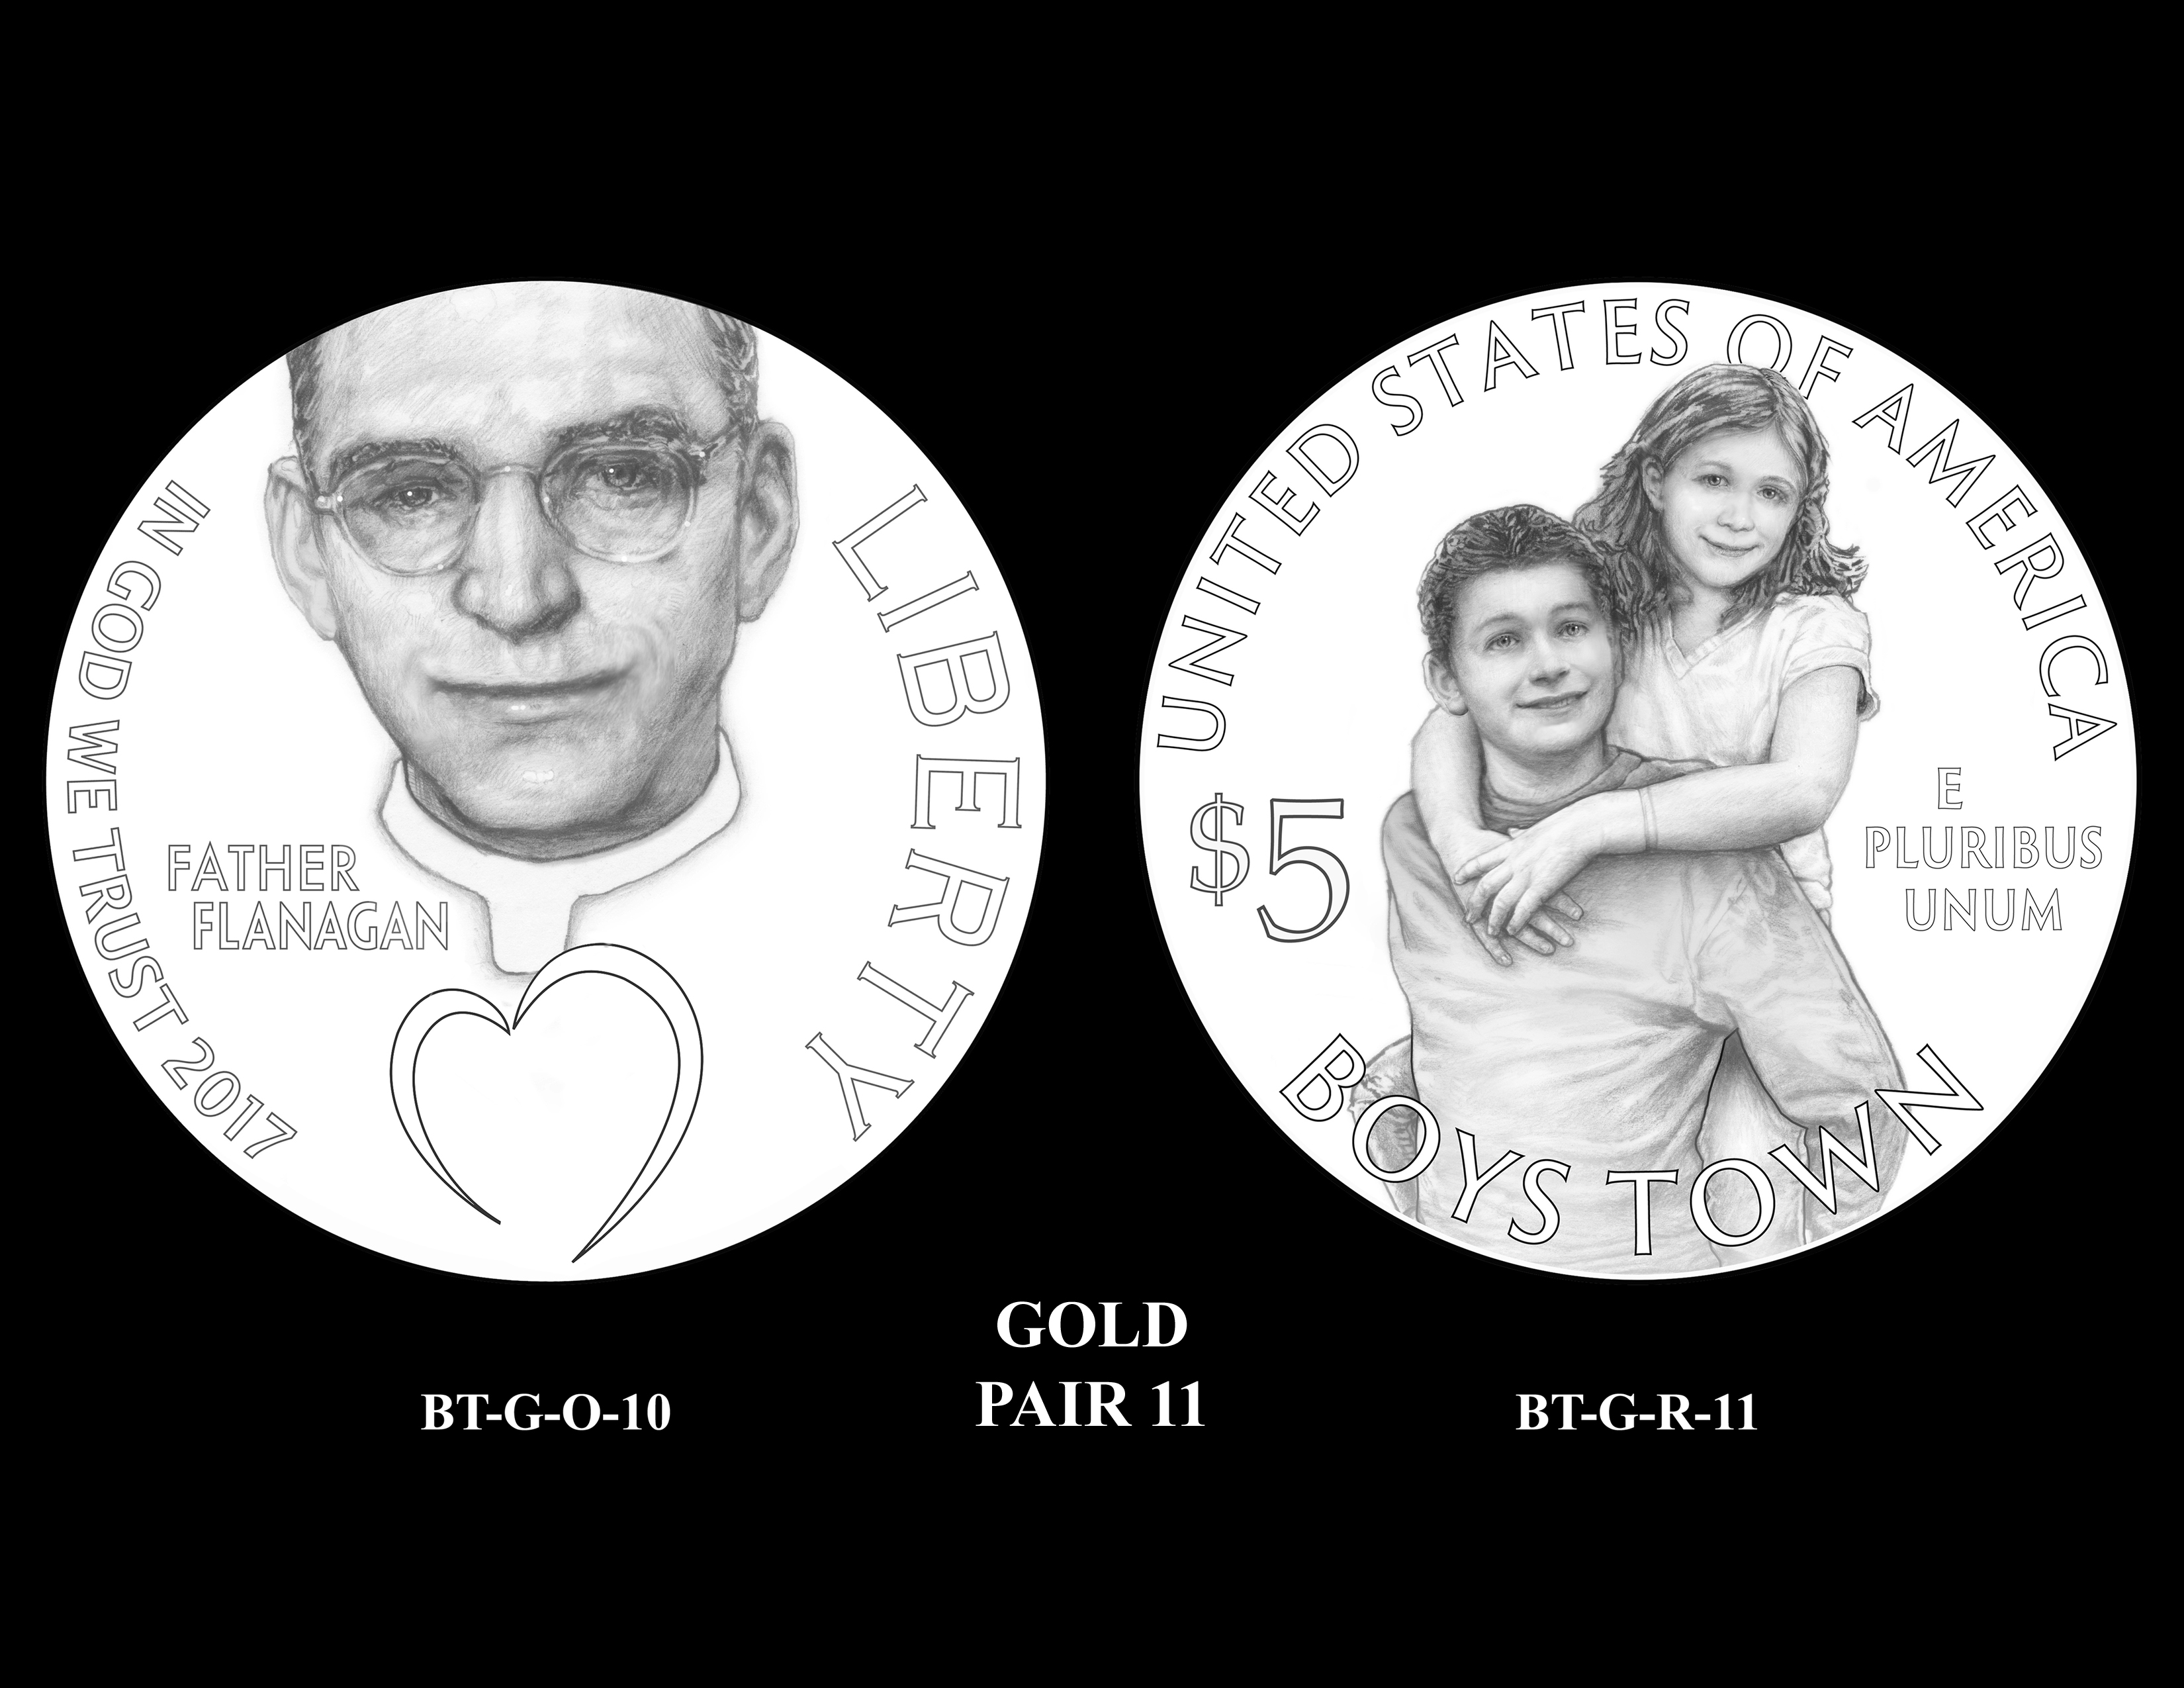 Gold-Pair-11 -- 2017 Boystown Centennial Commemorative Coin  Program